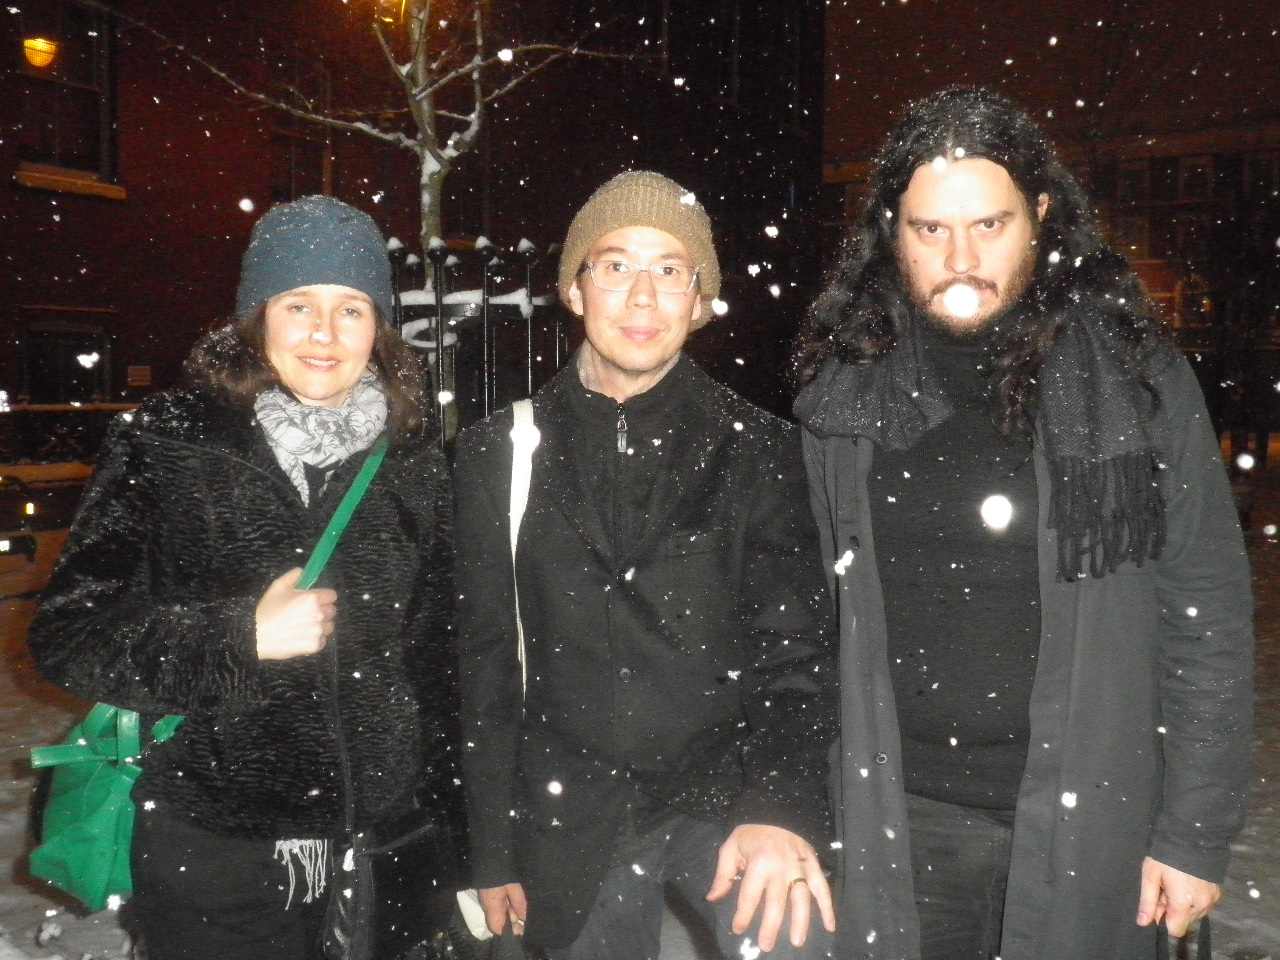 Nice snowy moment in London with Jessika Kenney & Eyvind Kang